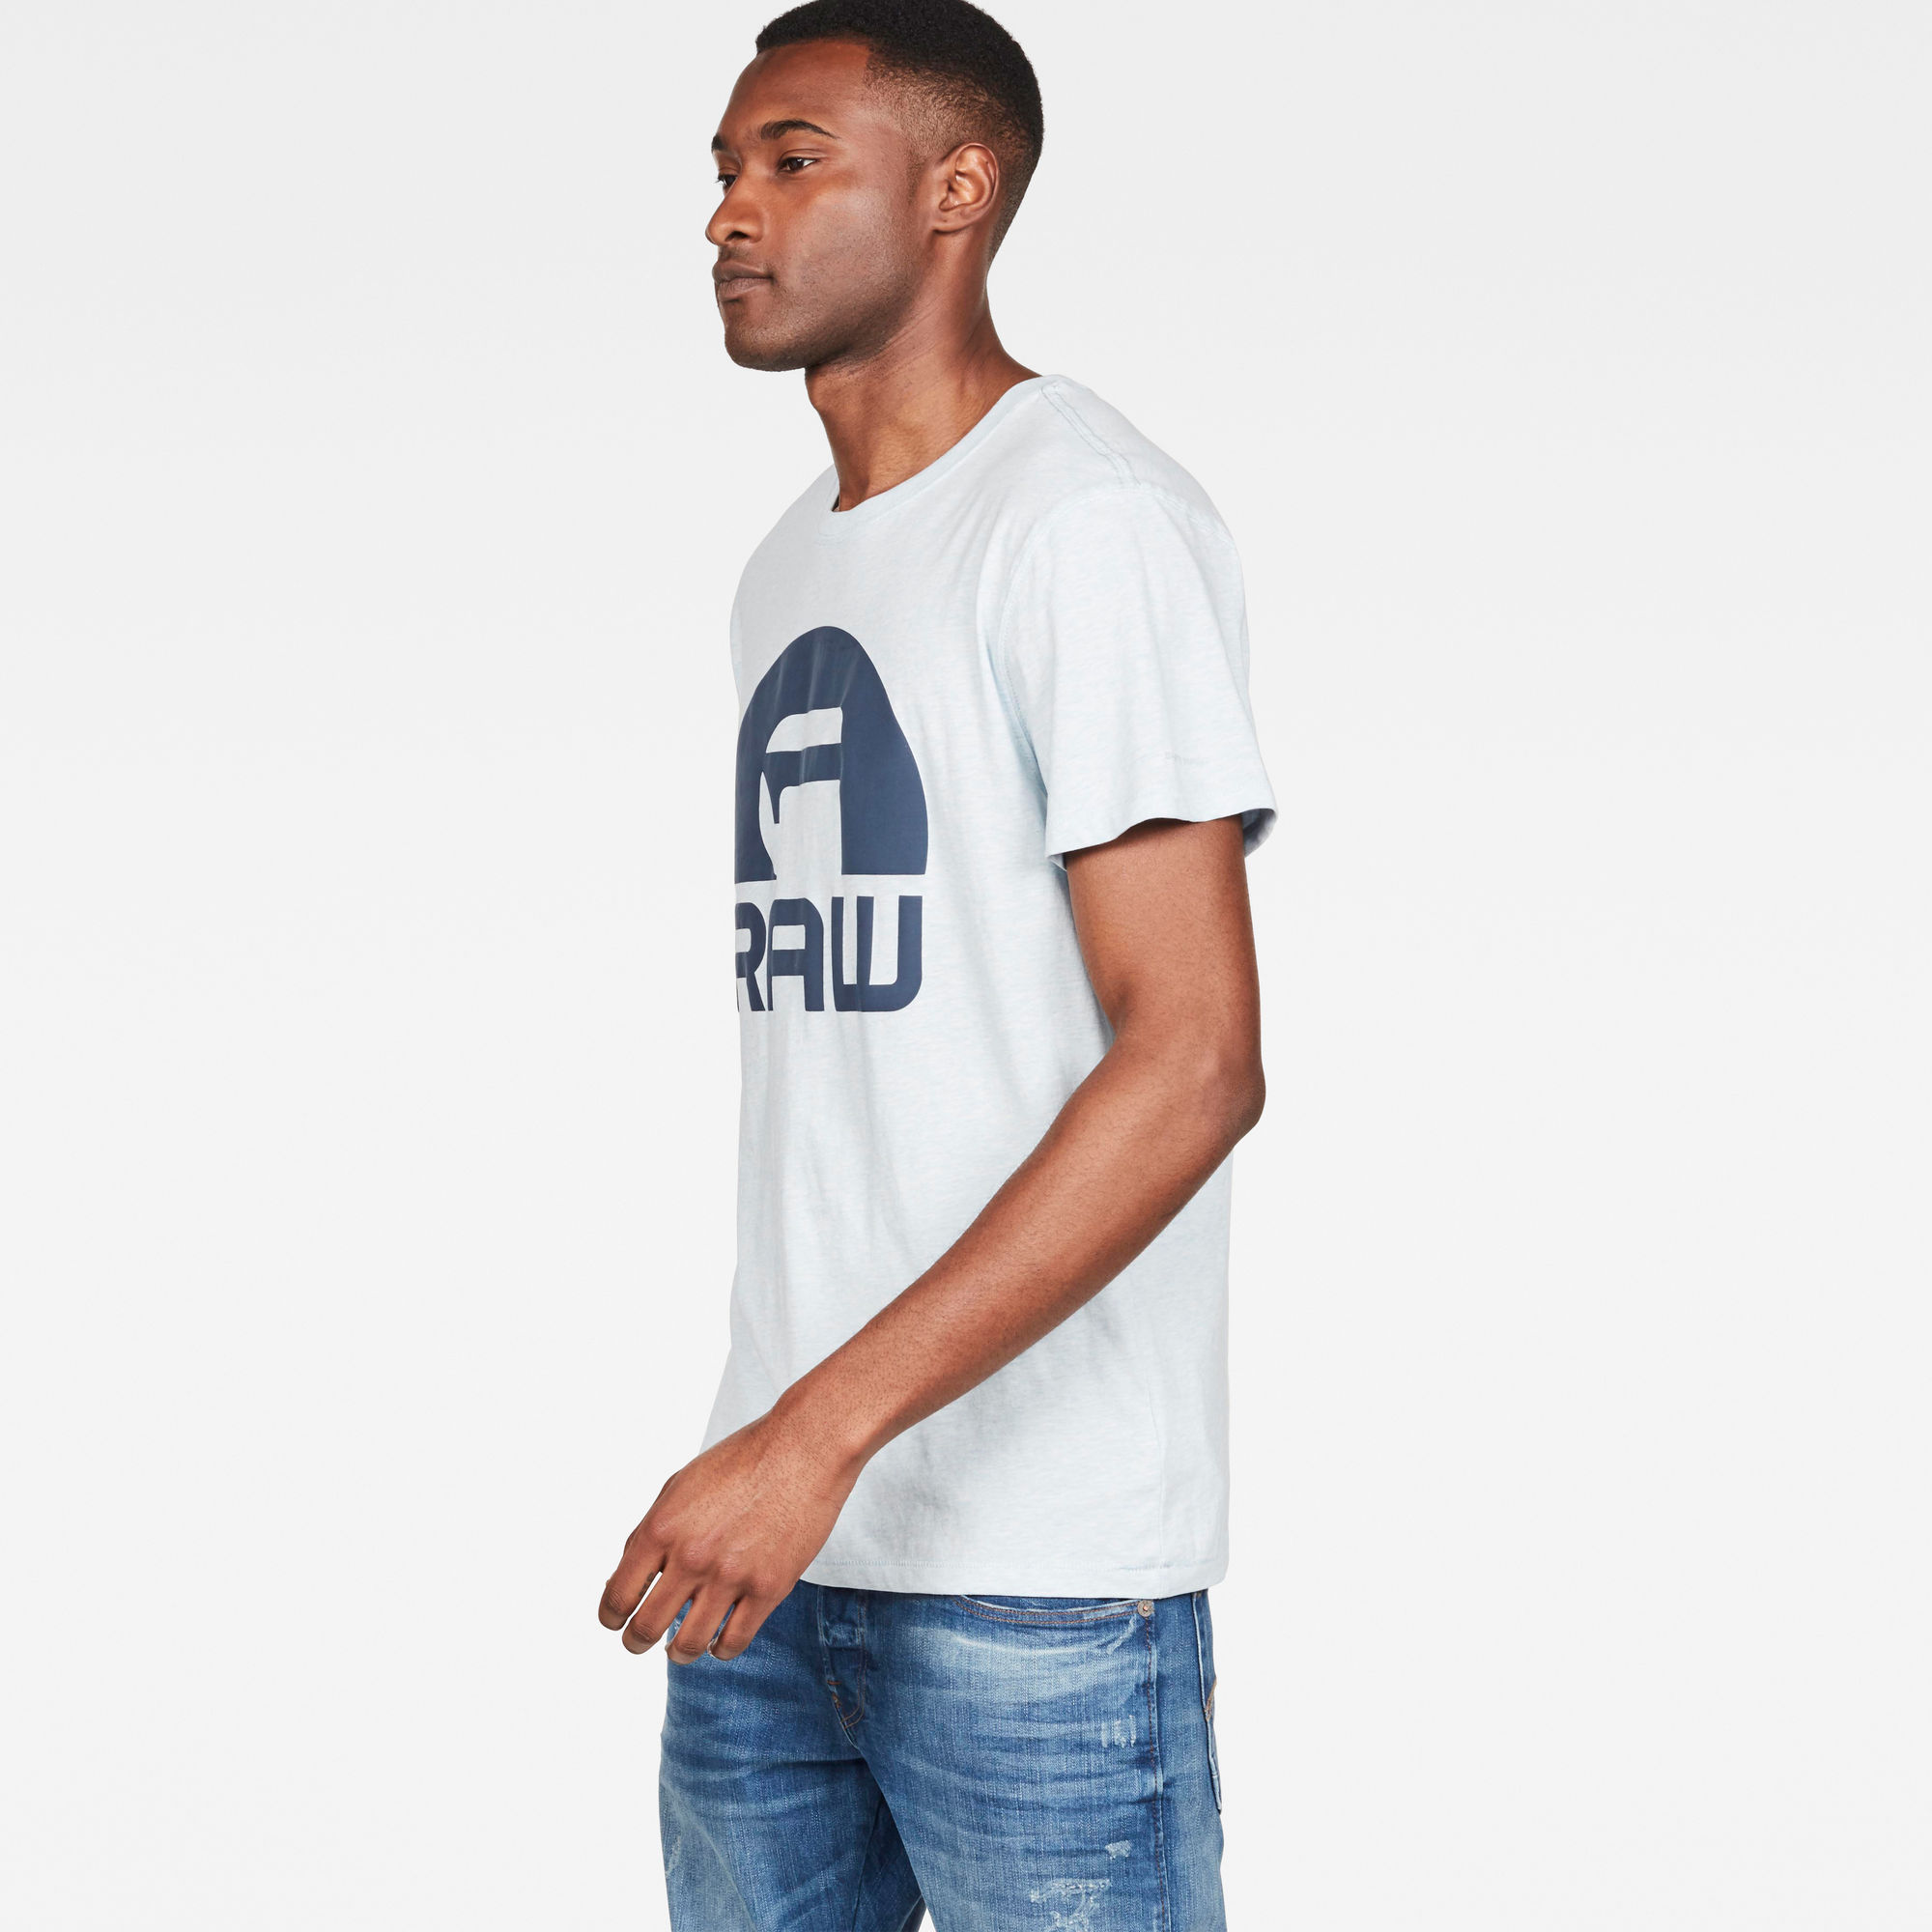 G-Star RAW Graphic 2 T-shirt